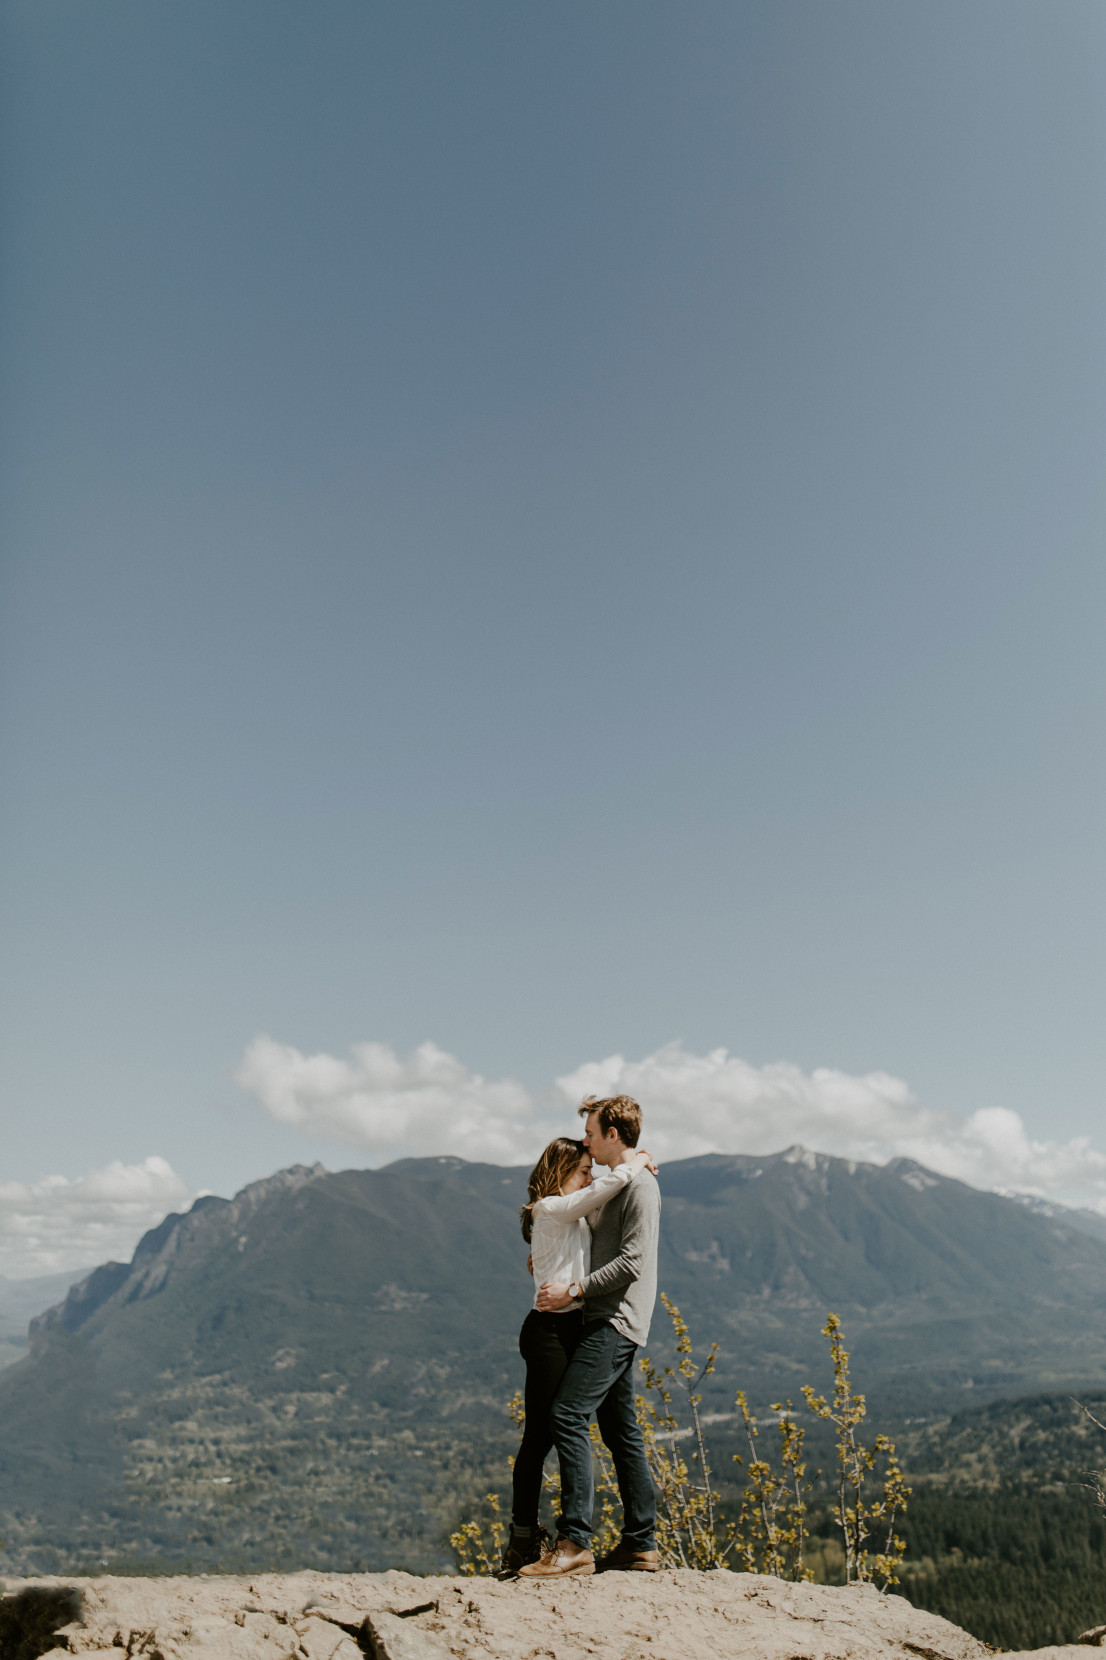 Adam kisses Janelle on the forehead. Adventure engagement session at Rattlesnake Lake, Washington by Sienna Plus Josh.